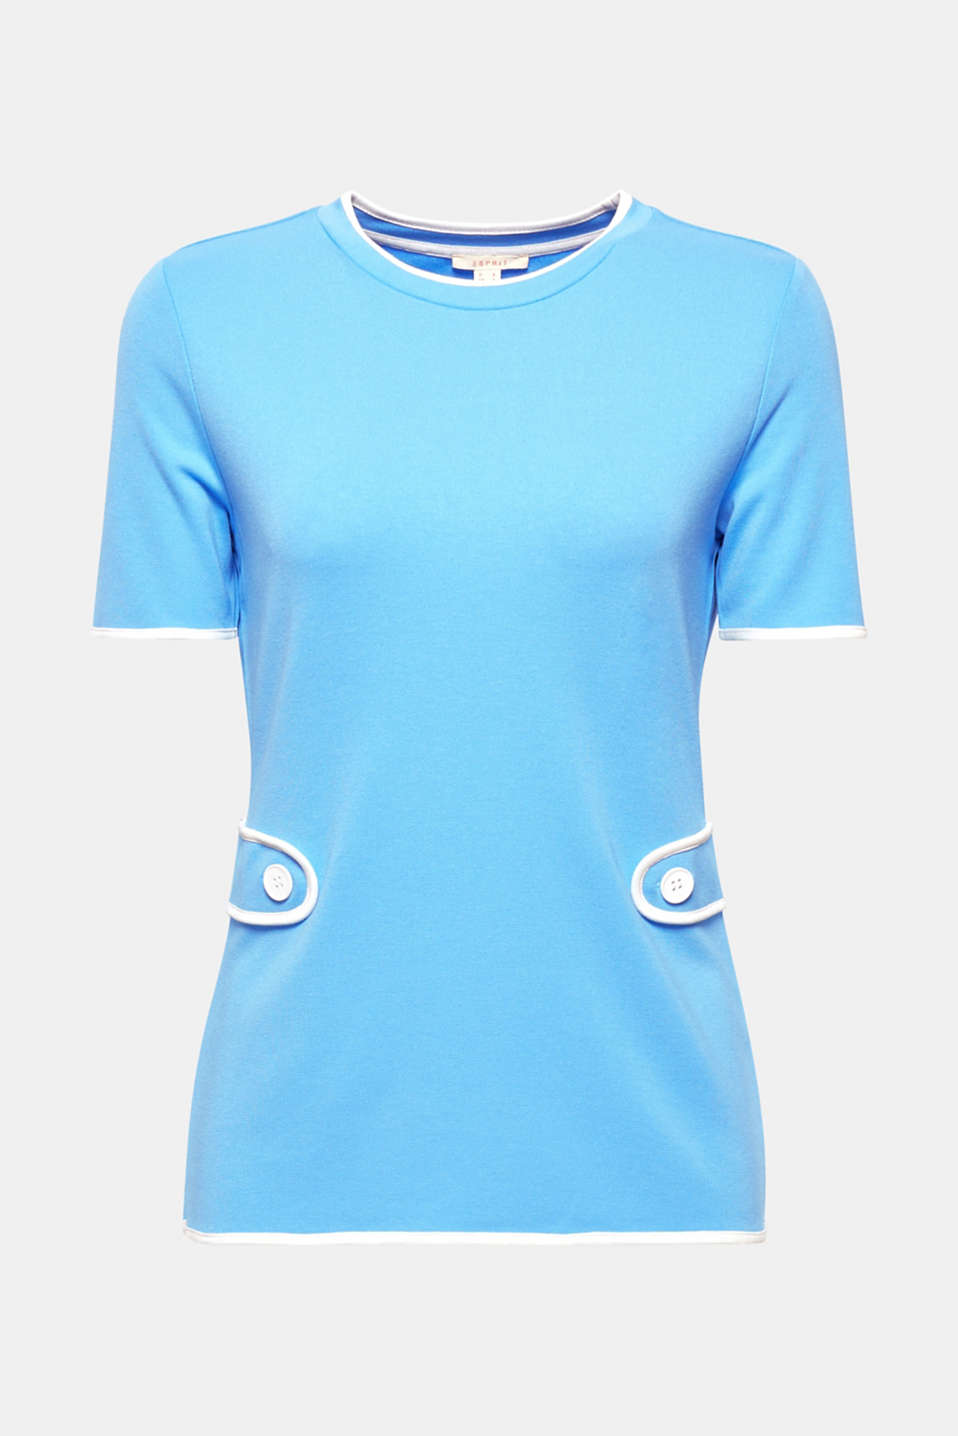 So retro, so feminine: the contrasting colour piping and emphasised waist featuring fancy buttons make this fitted T-shirt finished in dense, premium jersey with added stretch for comfort look totally authentic!